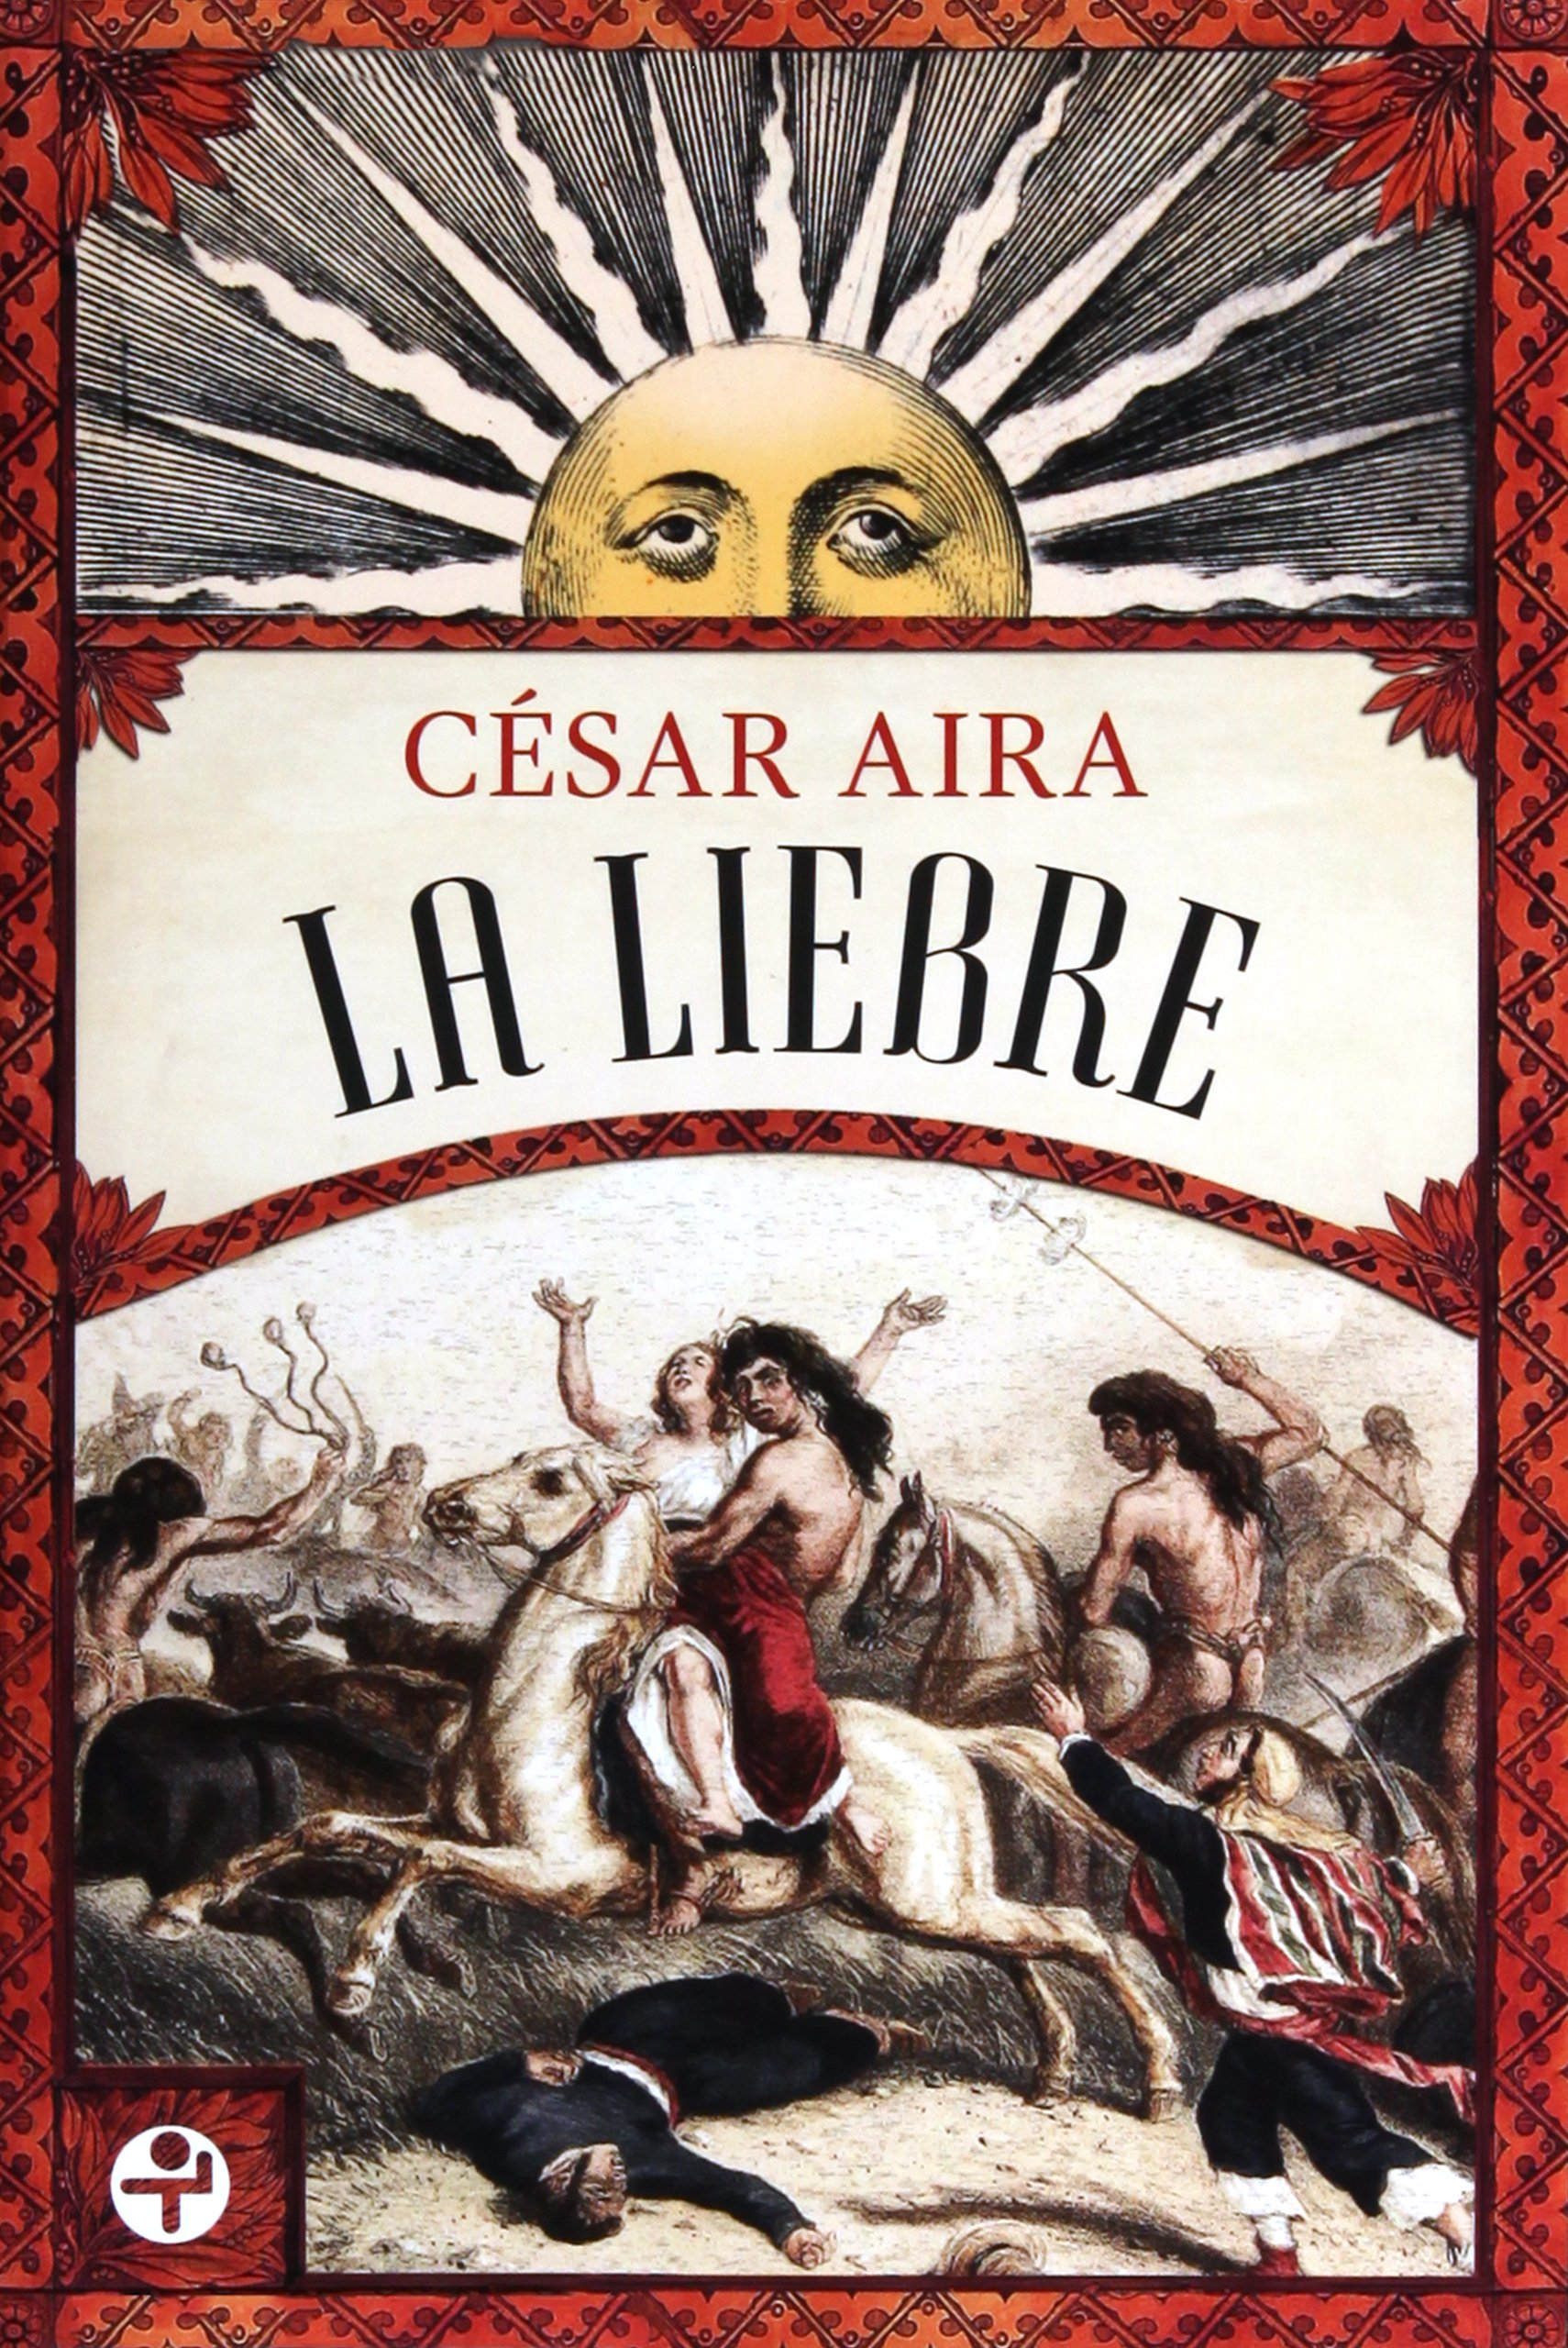 Image result for César Aira la liebre